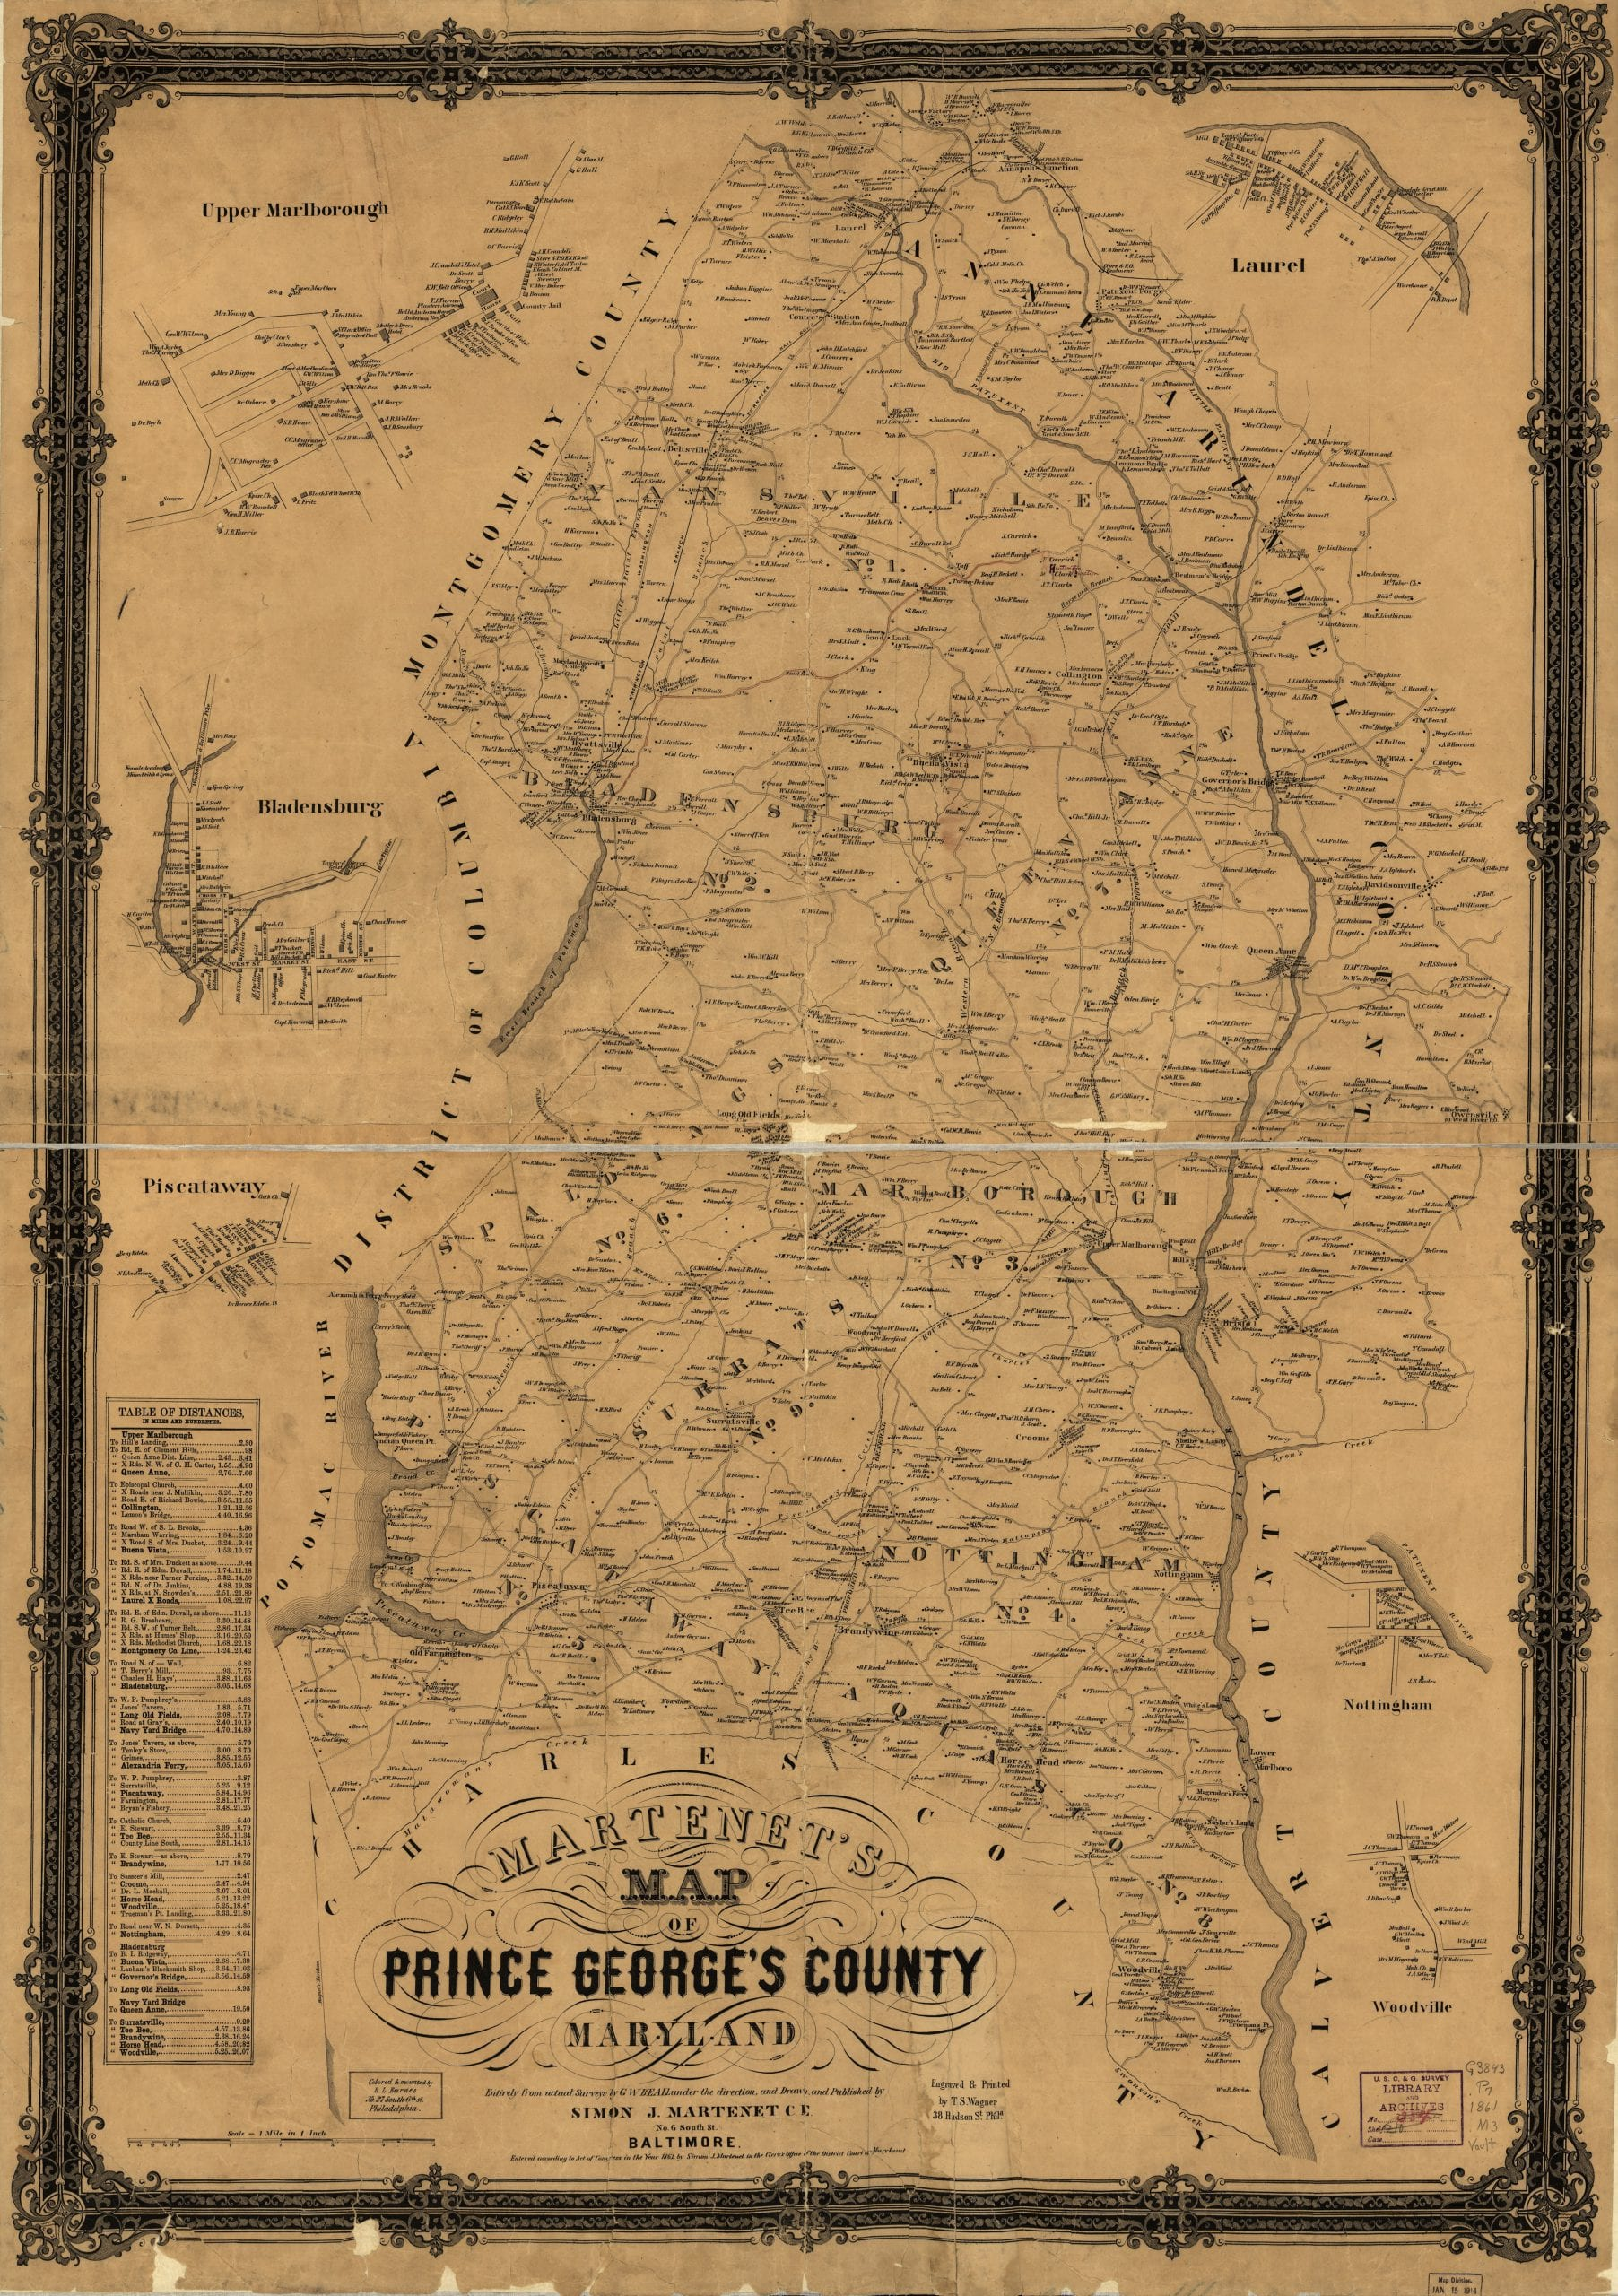 Martenet's Map of Prince George's County, Maryland